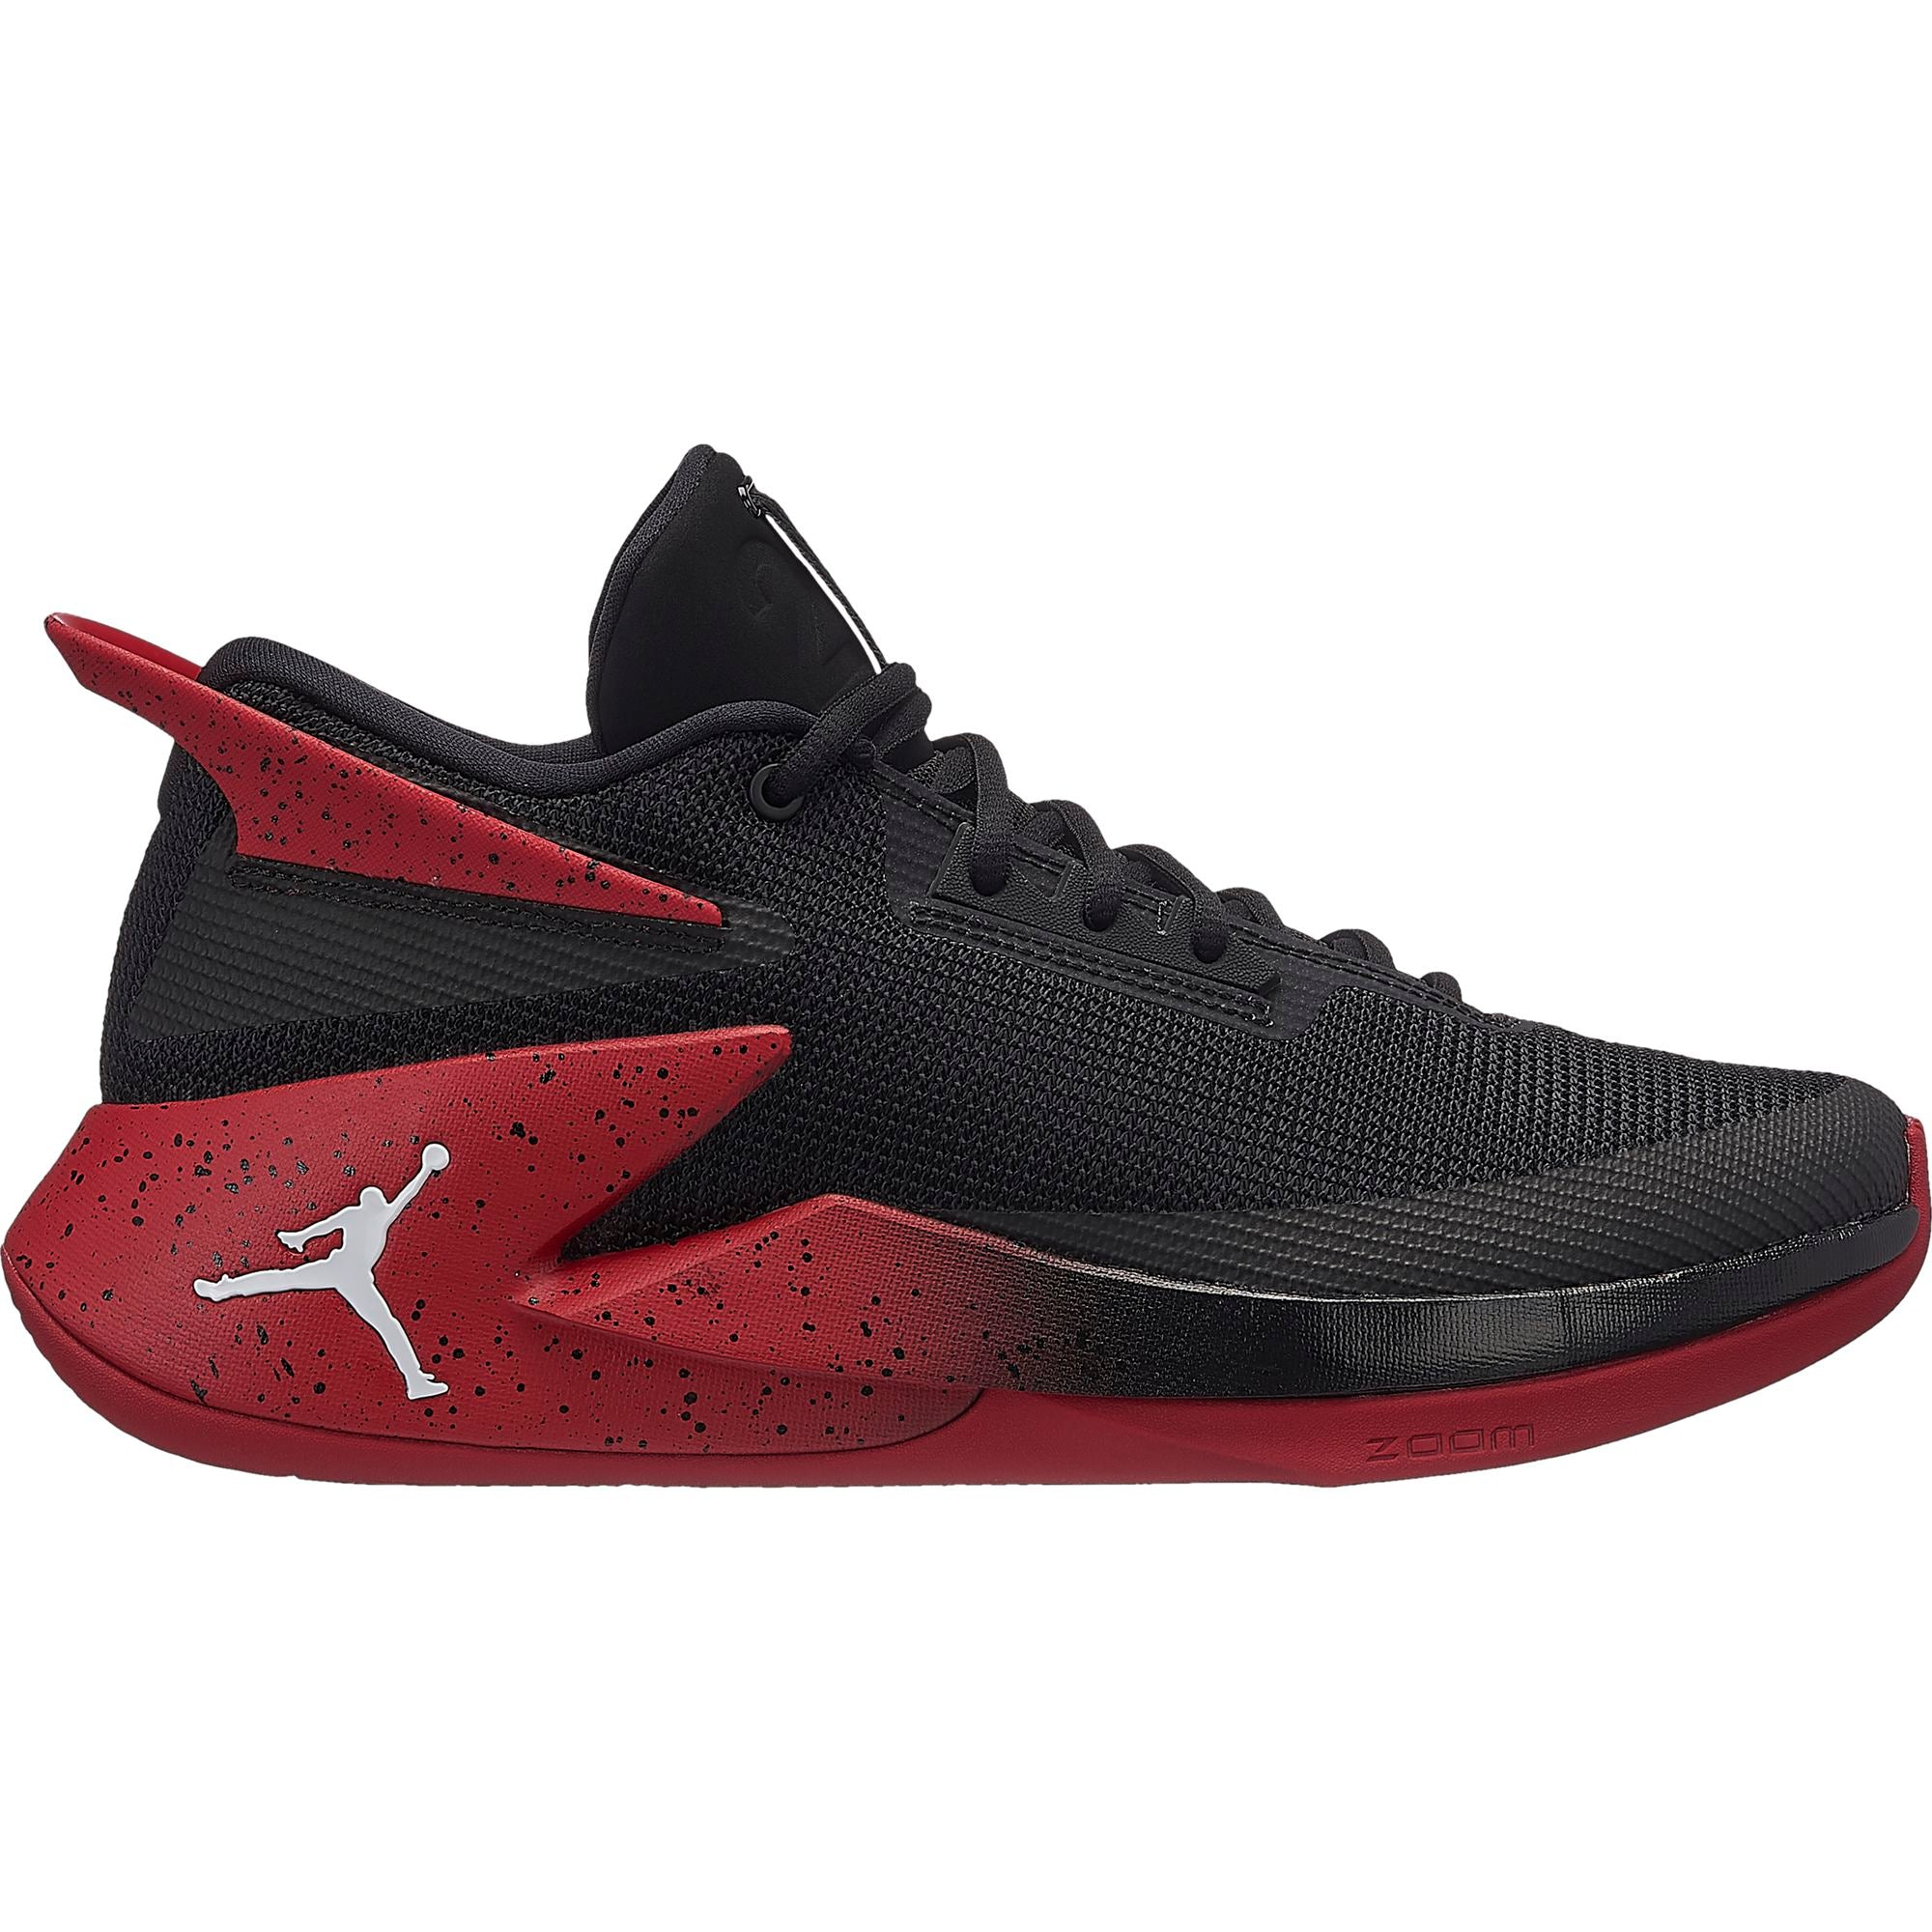 Nike Jordan Fly Lockdown Basketball Boot/Shoe - NK-AJ9499-023